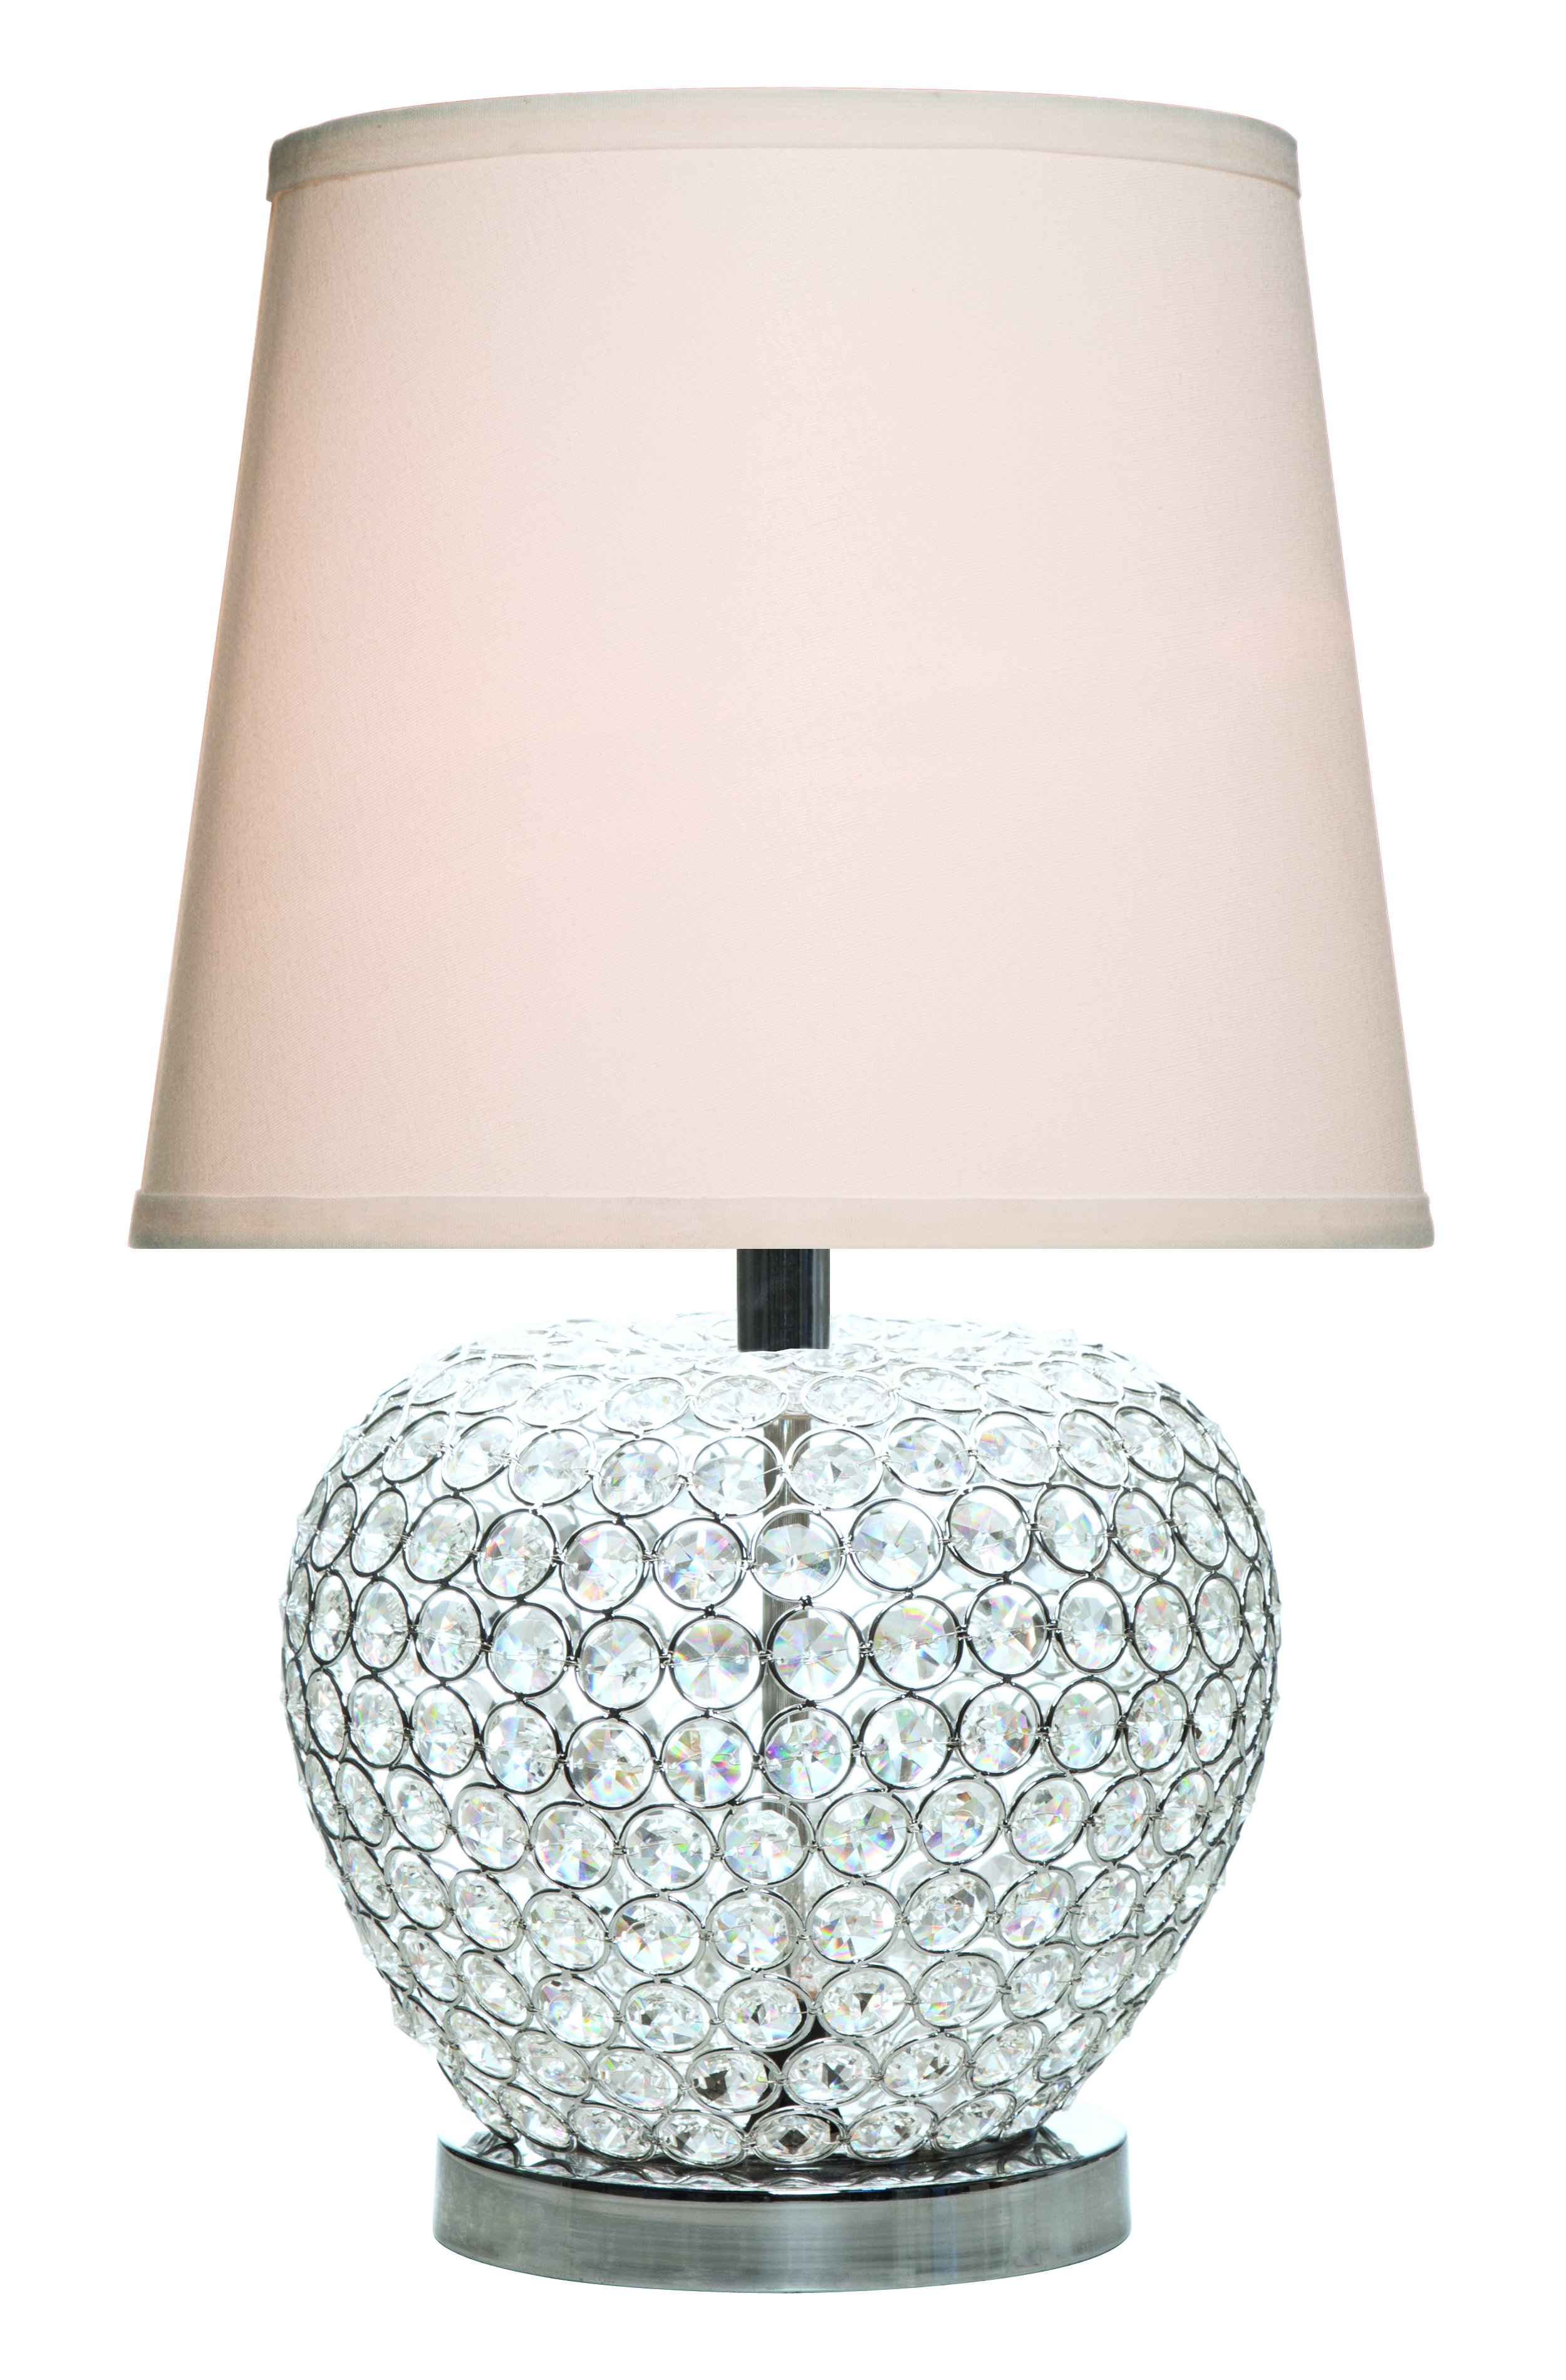 Perfect M1833 Table Lamp With Night Light By Anthony California Inc